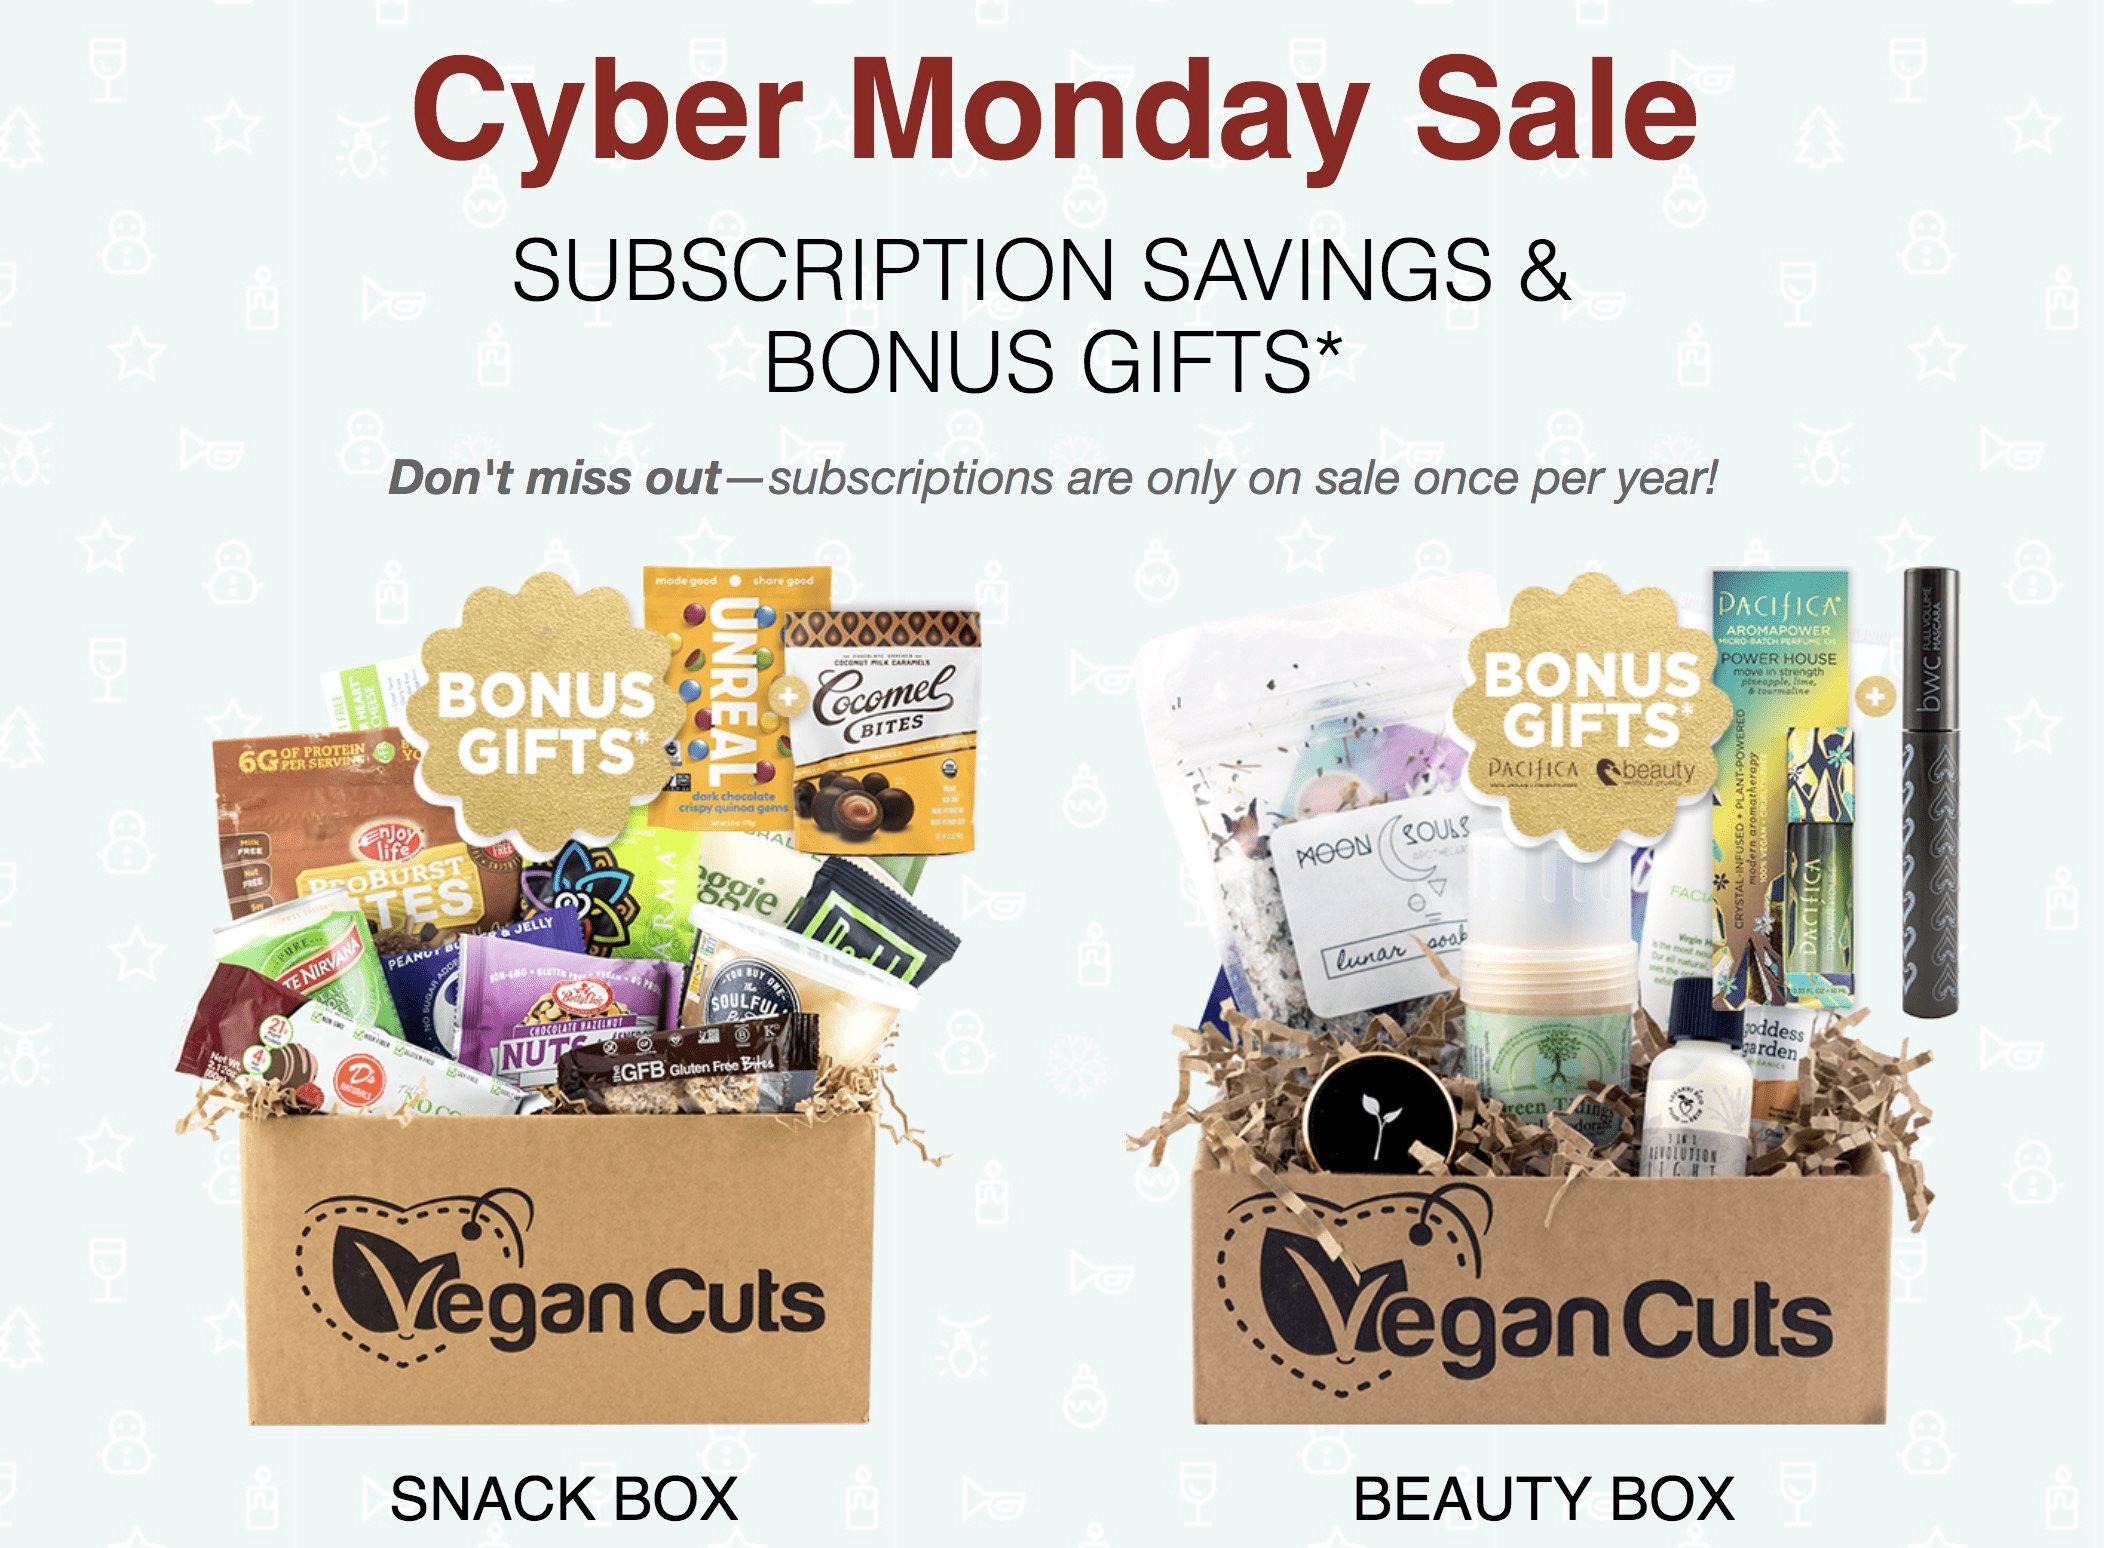 Vegan Cuts Cyber Monday Deal:  Save up to 15% On Subscriptions!